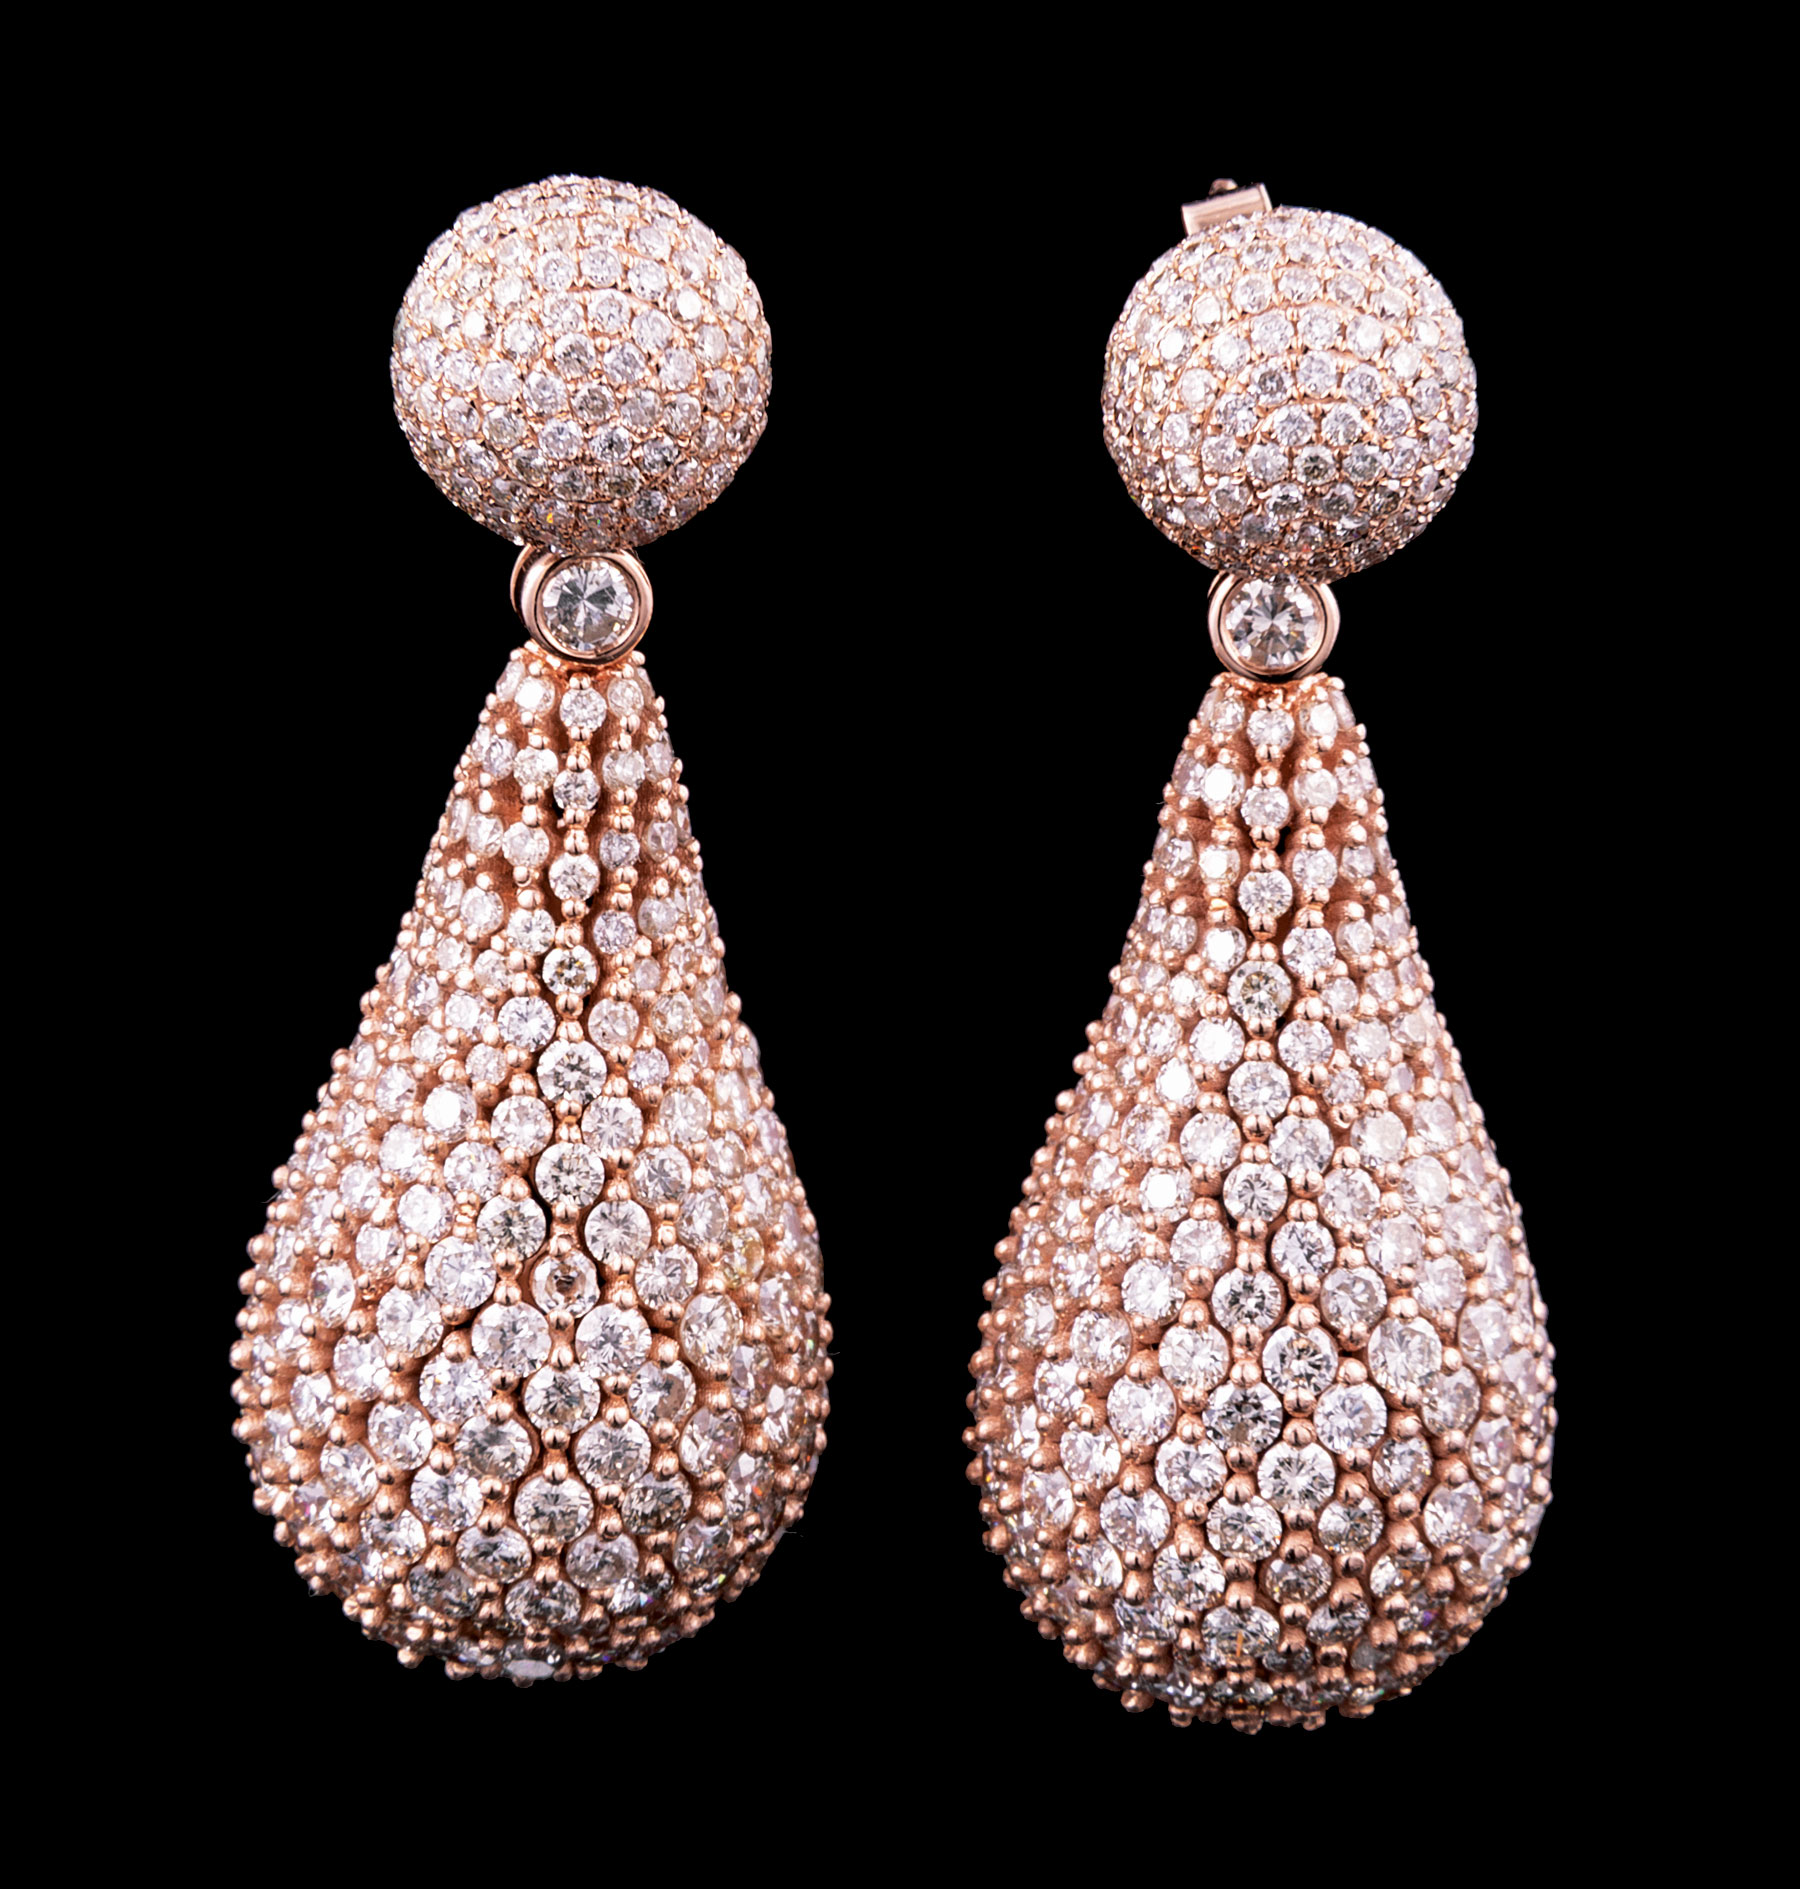 Lot 609 - Pair of 18 kt. Rose Gold and Diamond Earrings